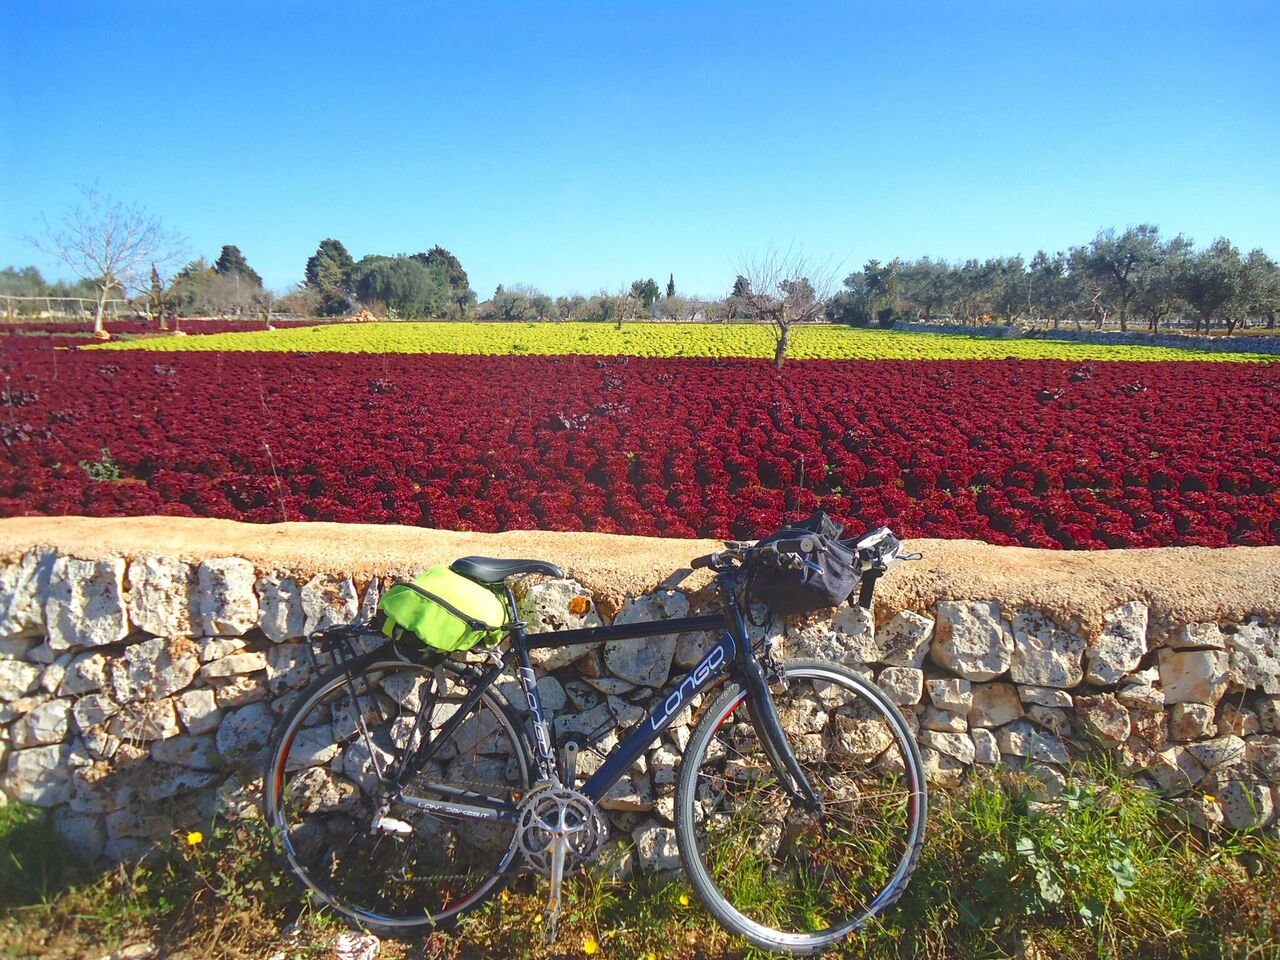 Scenic stops along the way, as you make your way through Puglia